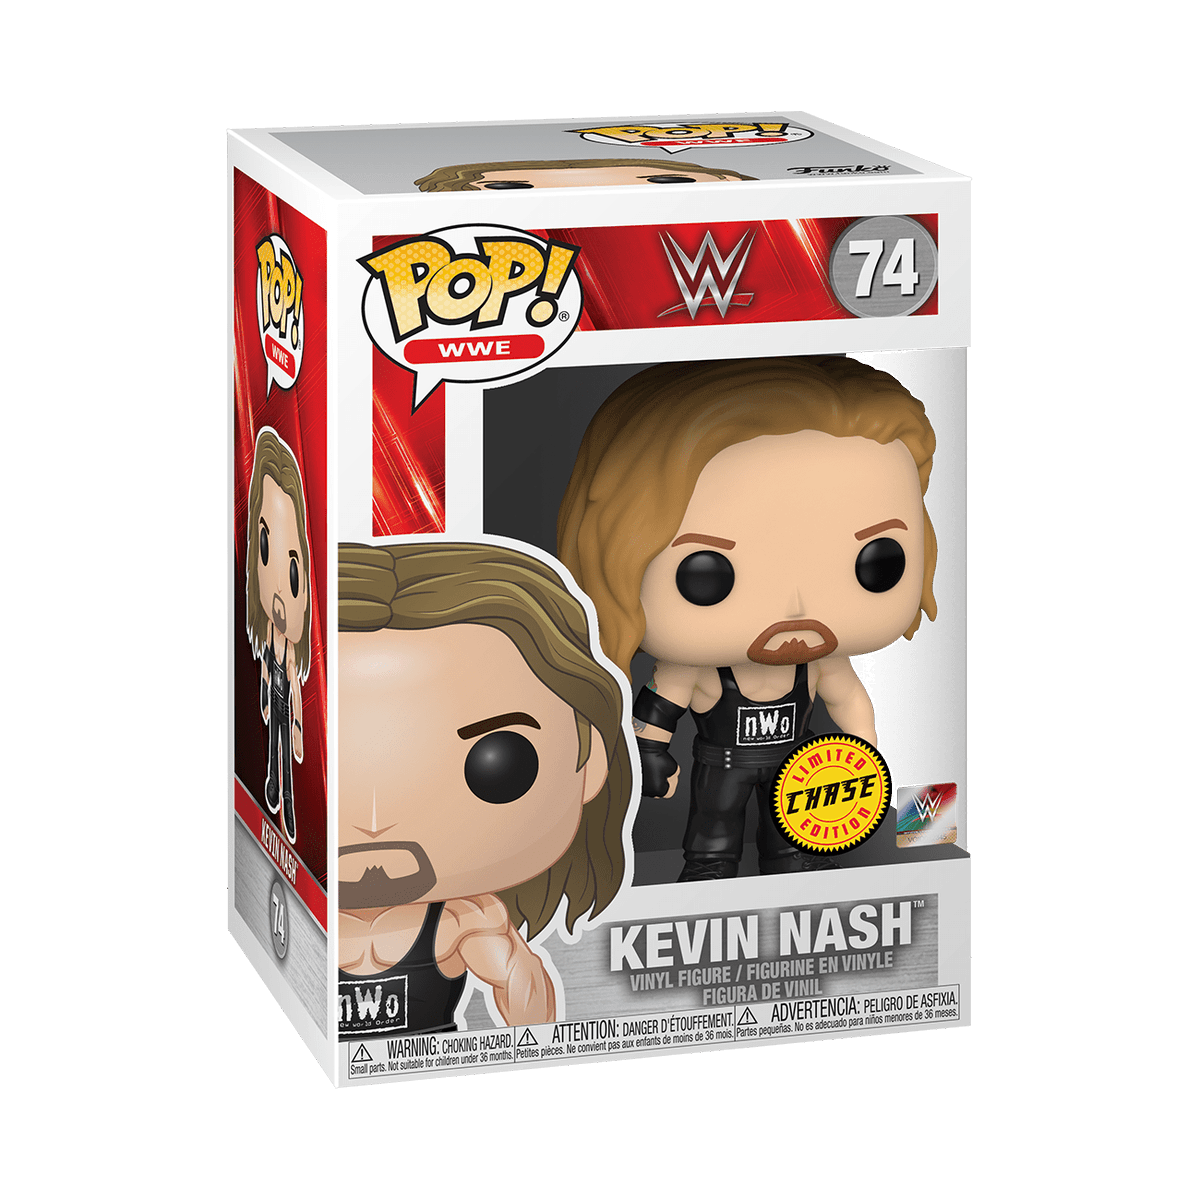 RT & follow @OriginalFunko for the chance to win a CHASE Kevin Nash Pop! #WrestleMania